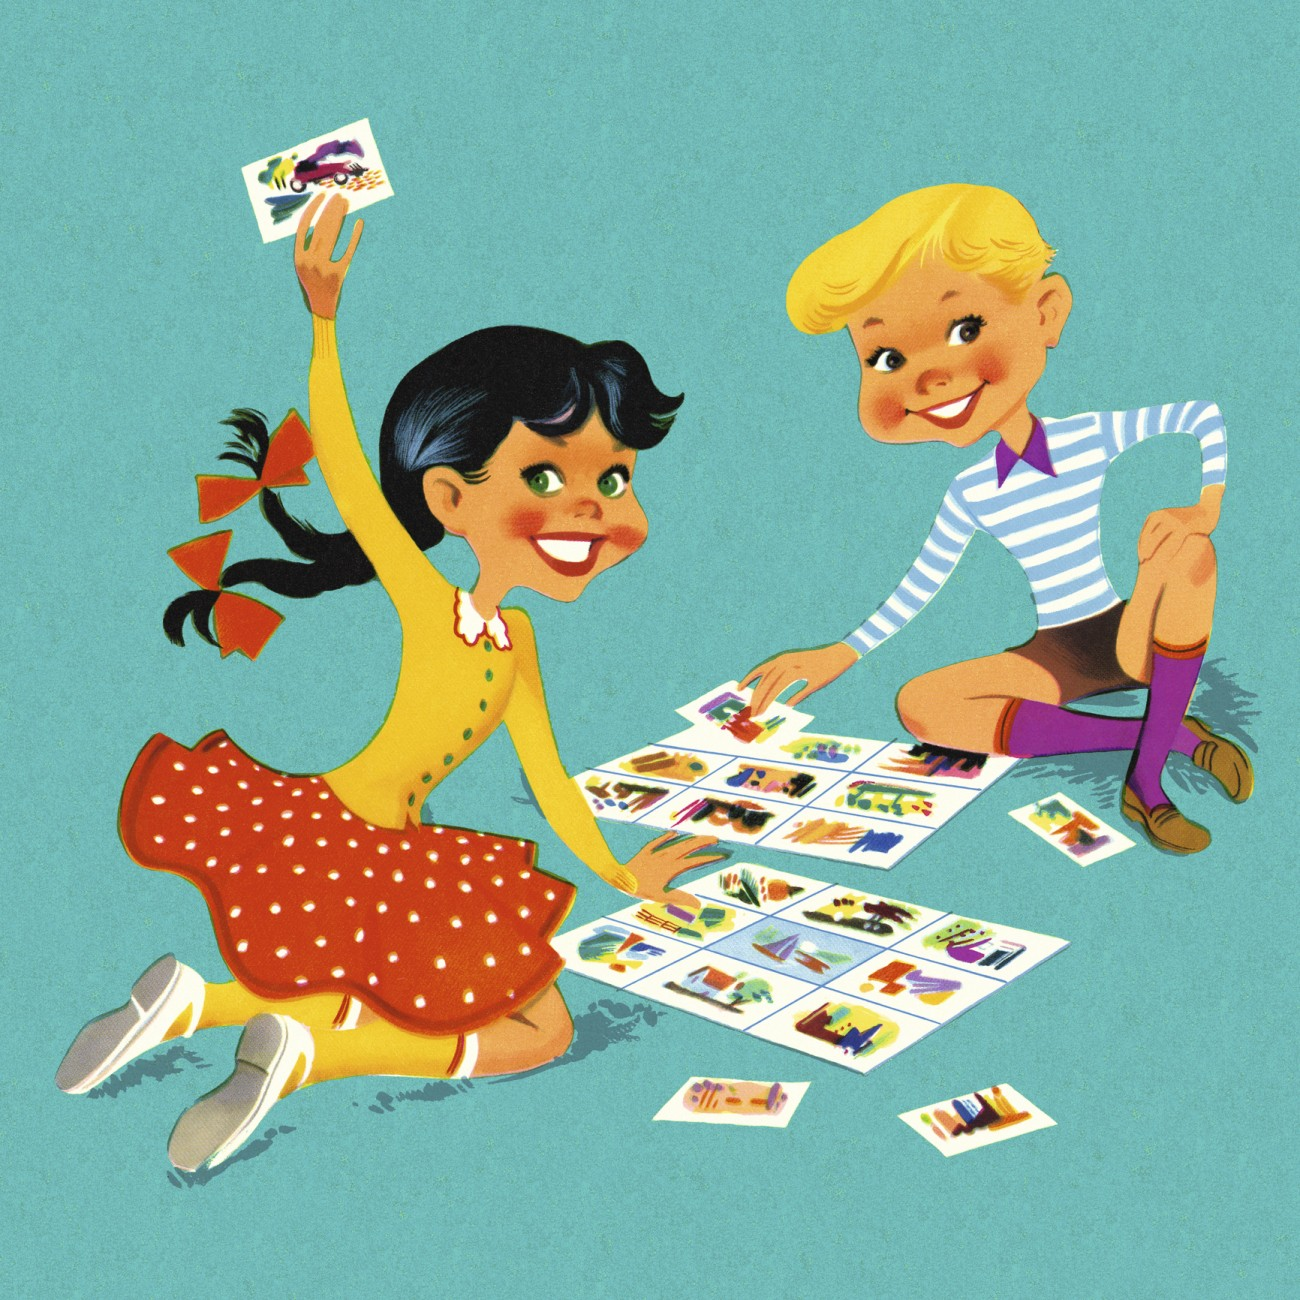 Boy-and-Girl-Playing-with-Cards-1003353316_1735x1735.jpg